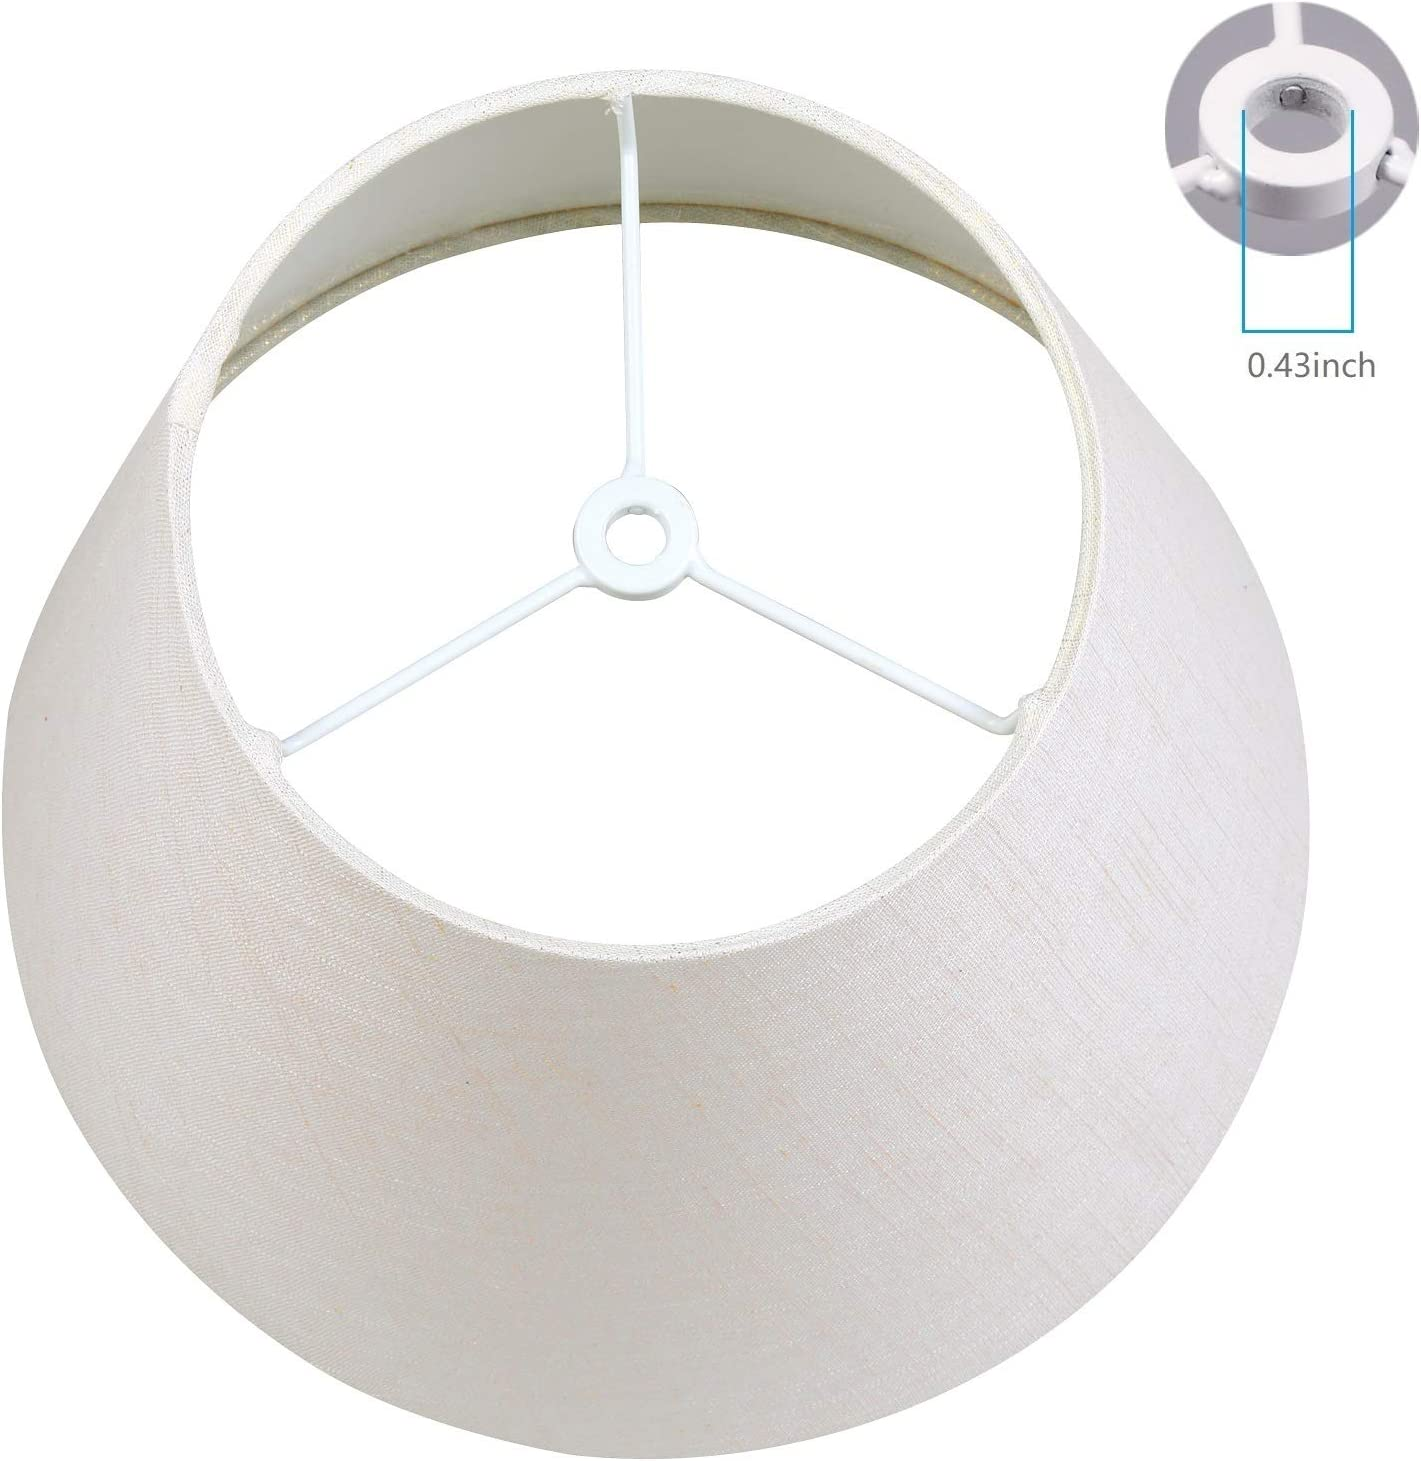 10.3x6.5x7.5 inch Pure White fabric Lamp Shade IMISI Desk Lamp Table Lamp Shade Linen Fabric Reading Lamp Shades Dining Standing